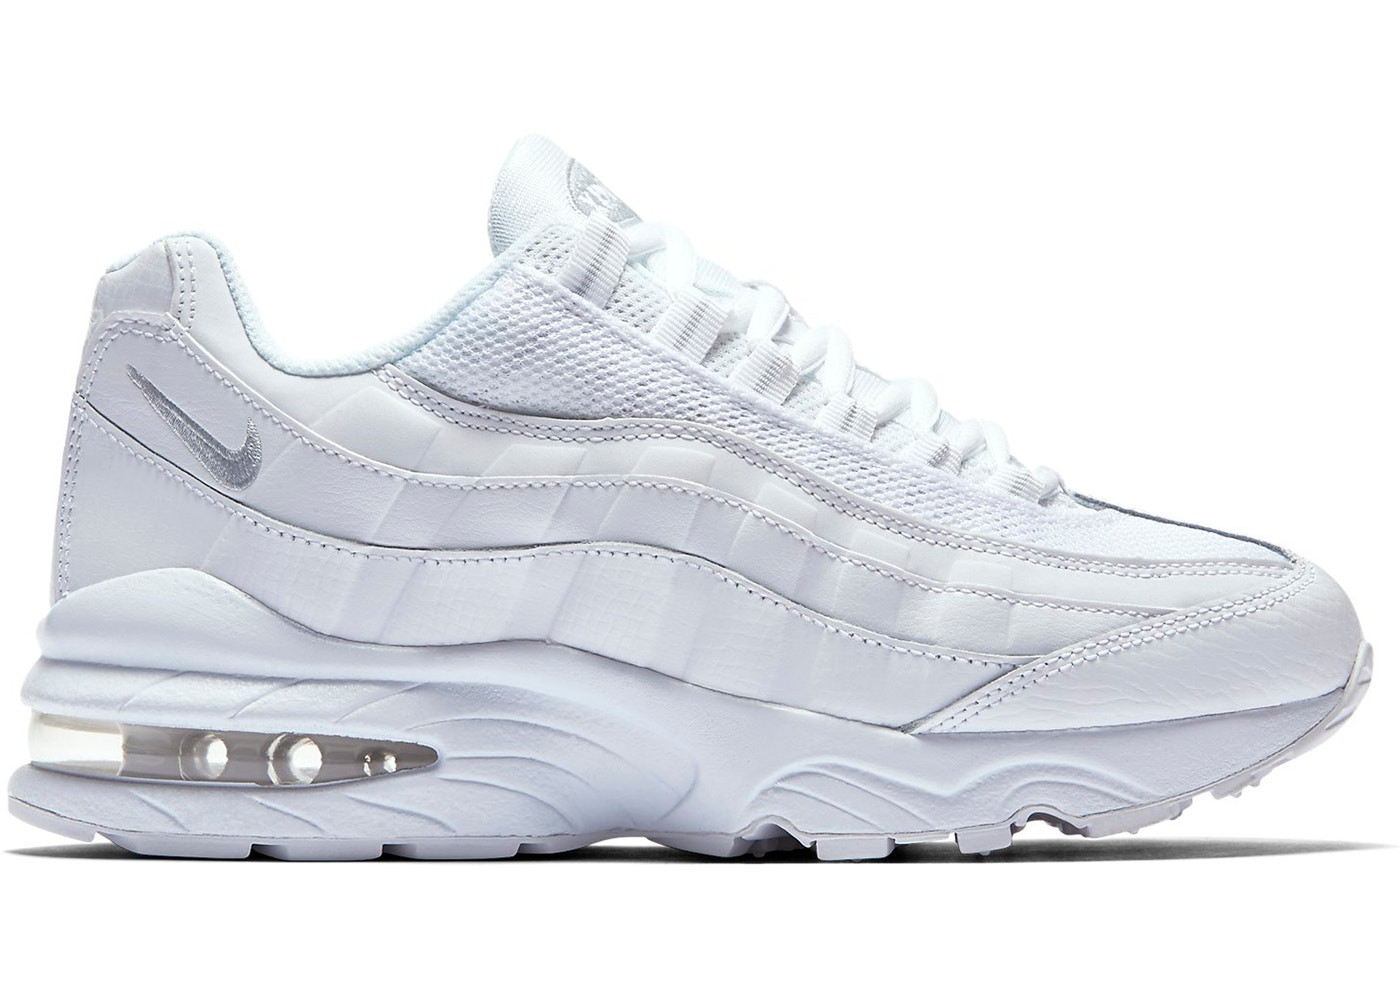 low priced 5e355 89b2c Air Max 95 White (GS)